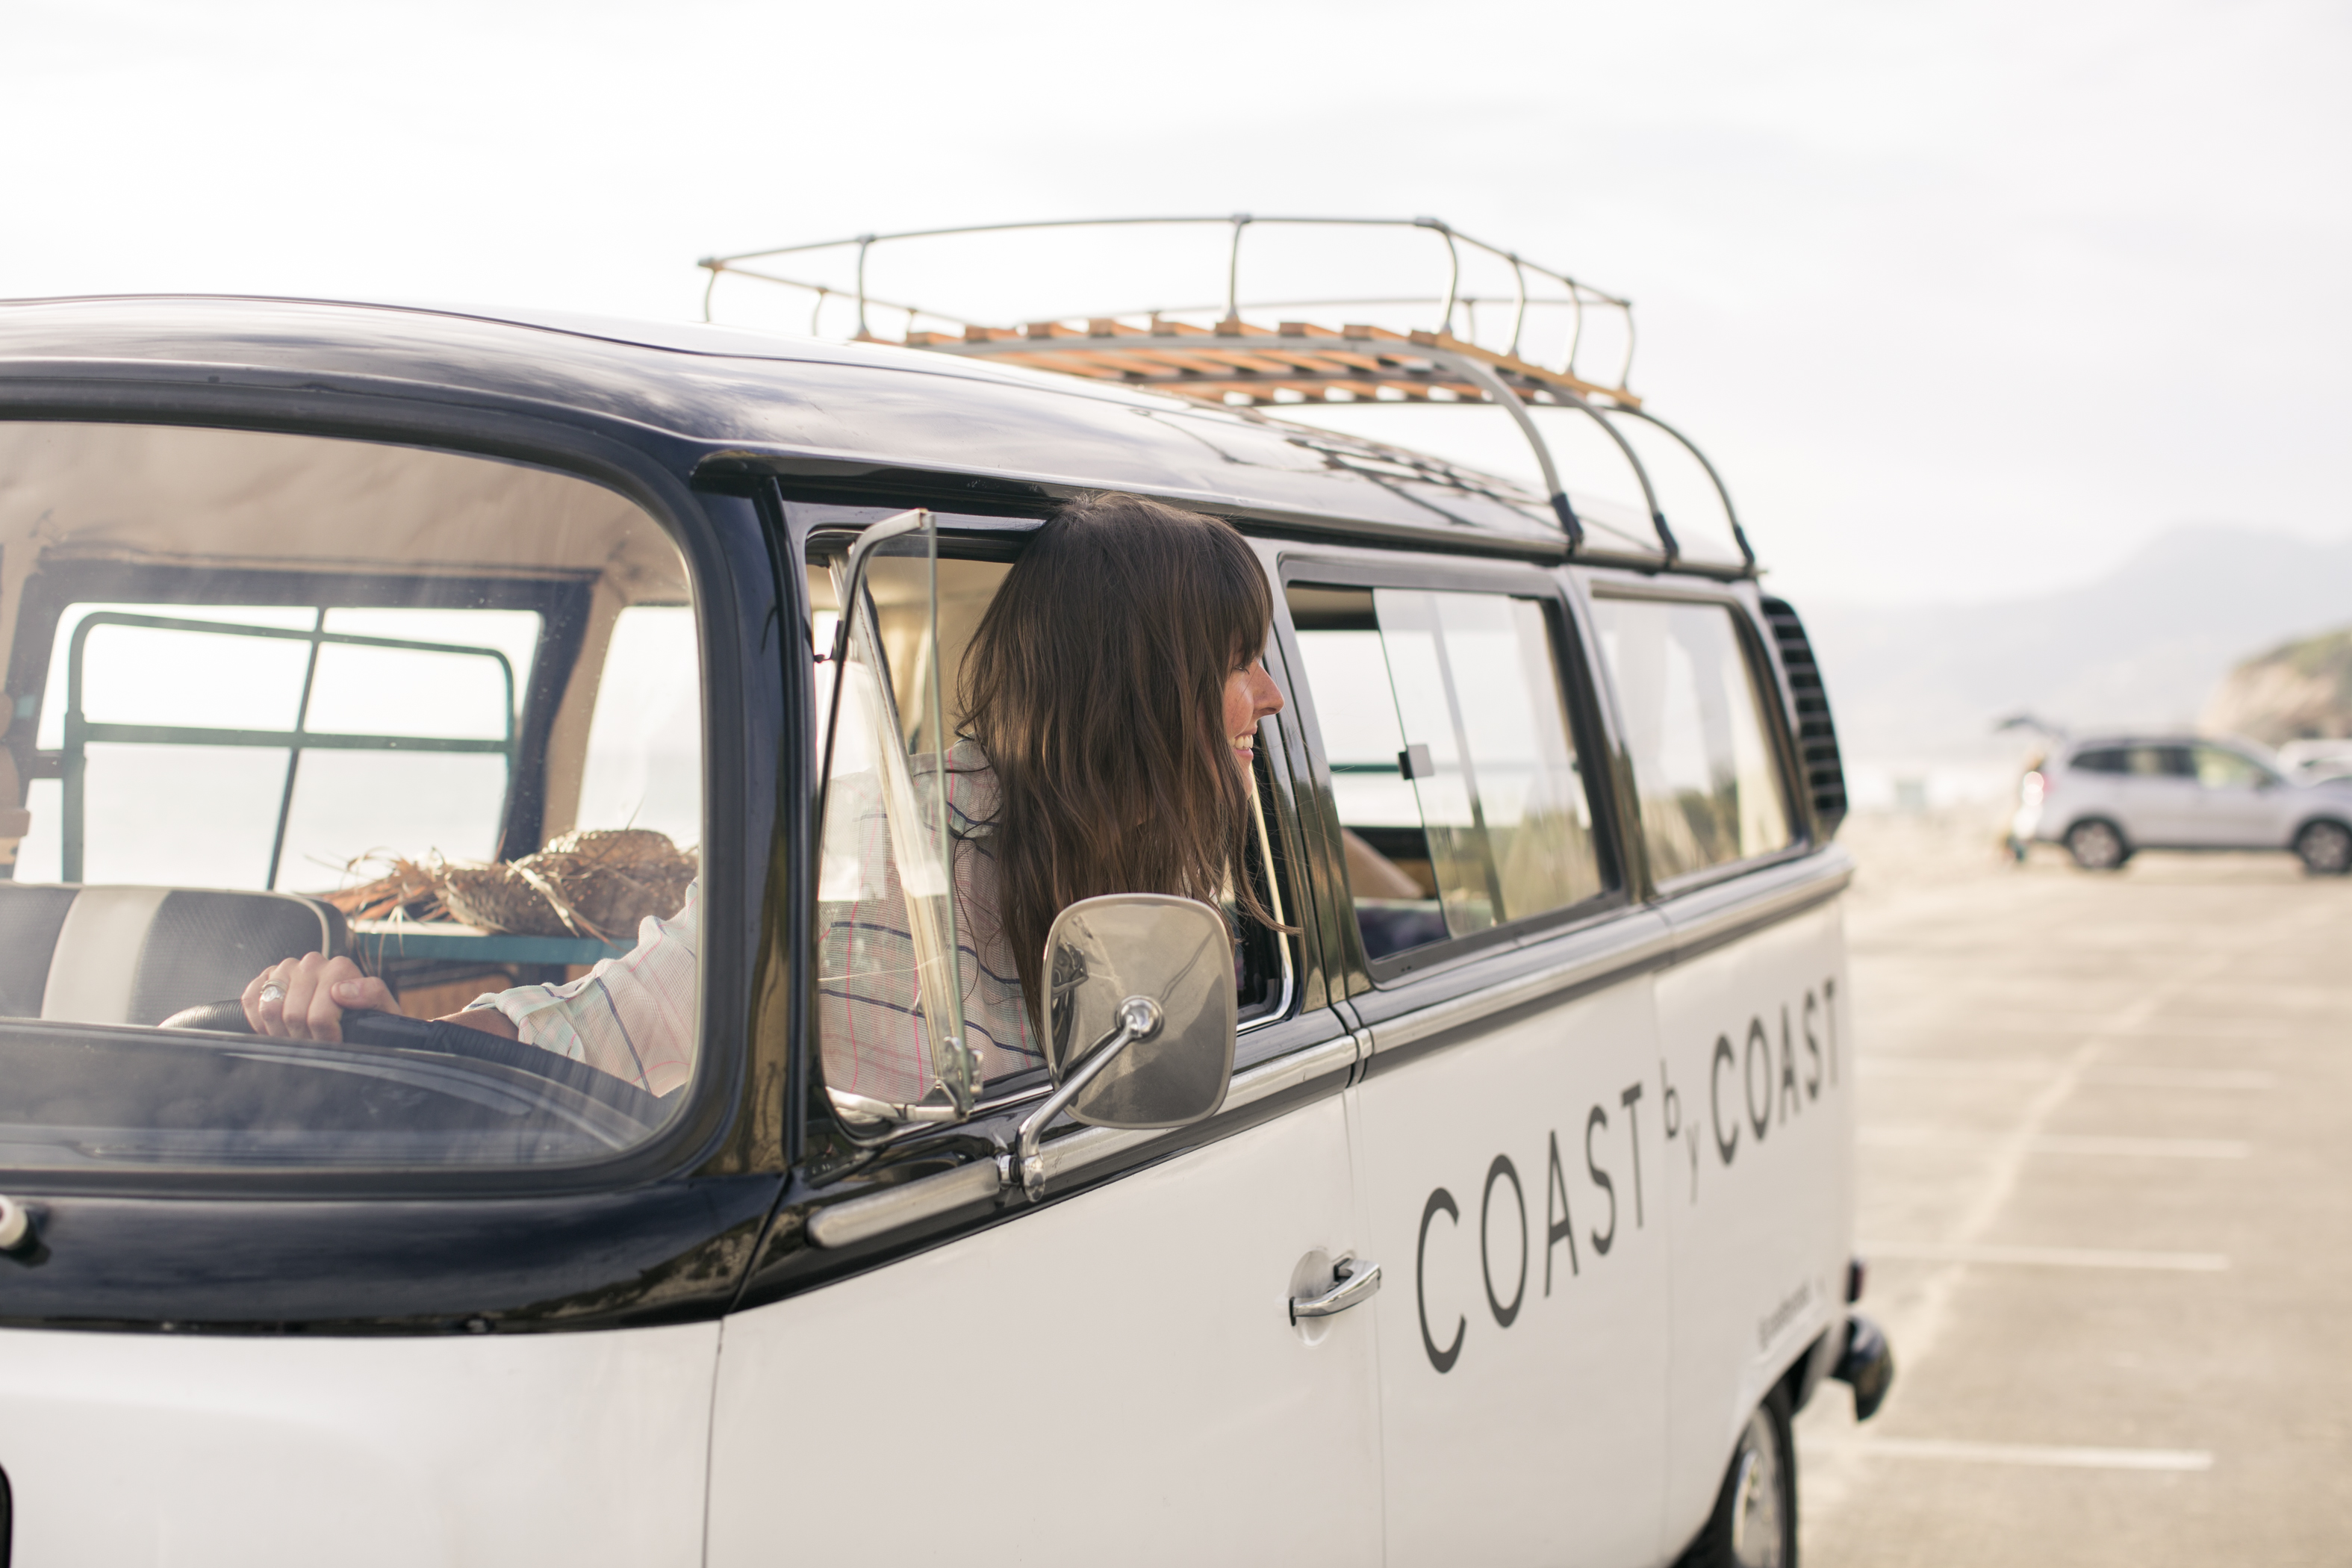 Lou and Grey's Summer Staples Are Coming to Cali in a Cute VW Bus